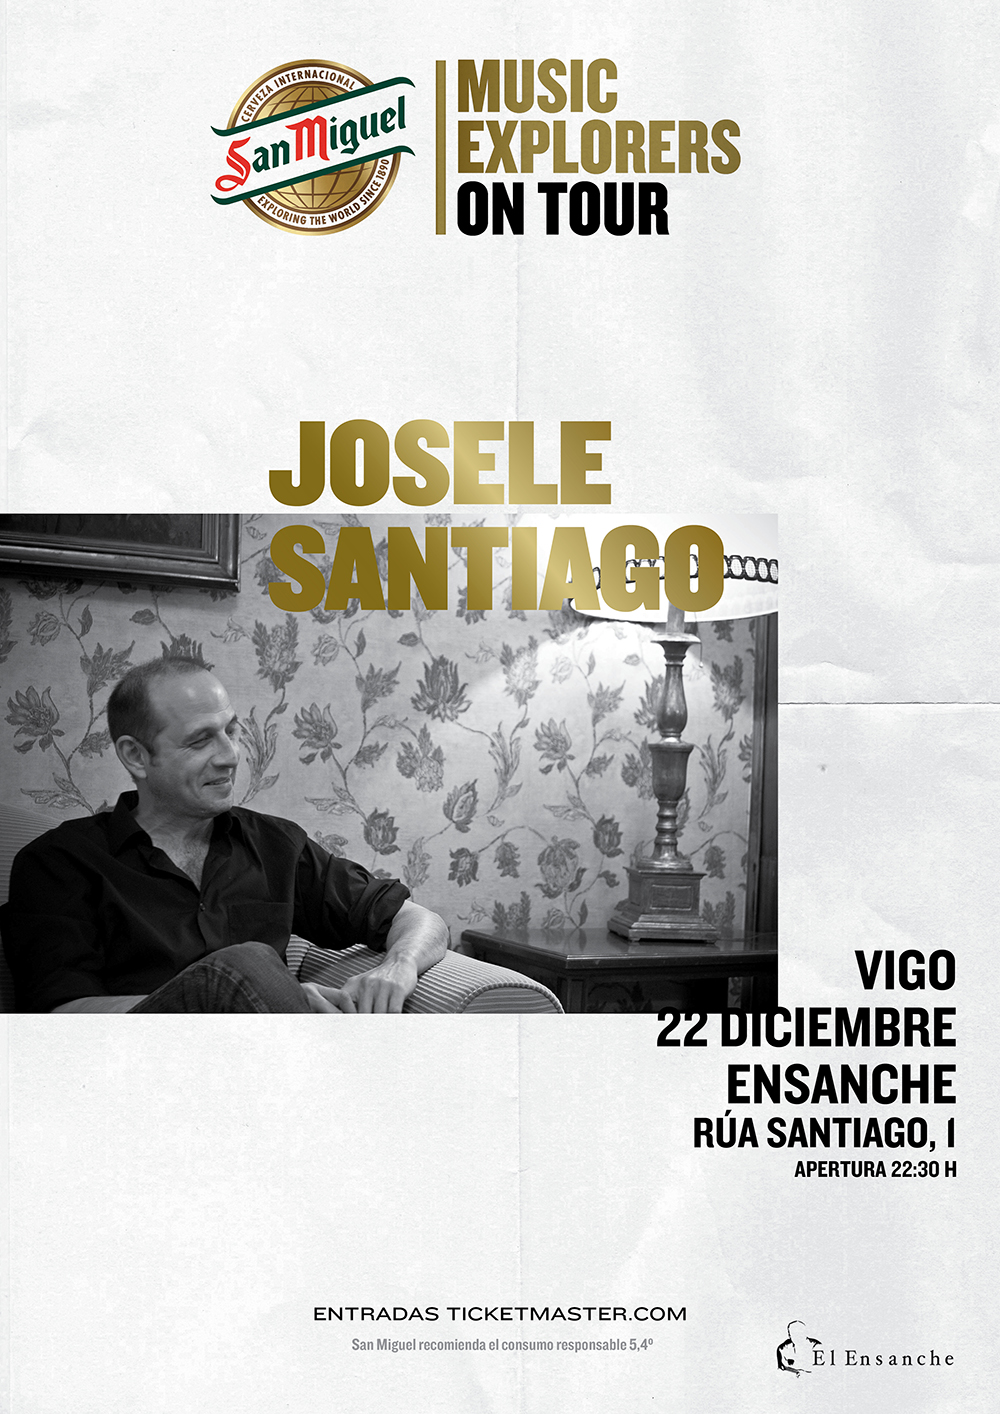 Josele Santiago – San Miguel Music Explorers on Tour